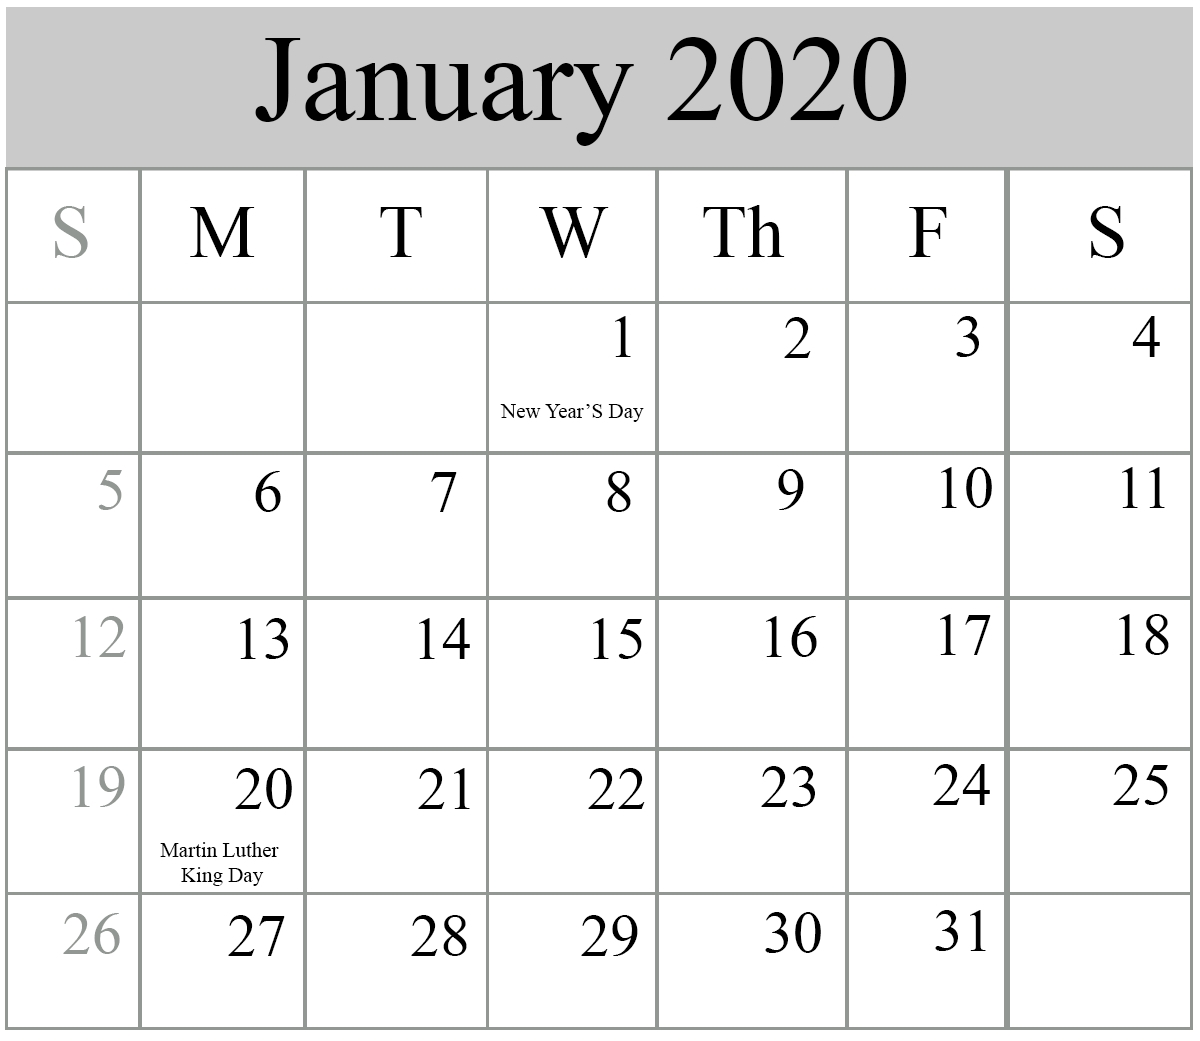 January 2020 Telugu Calendar Usa - Telugu Calendar 2018-January 2020 Calendar Pongal